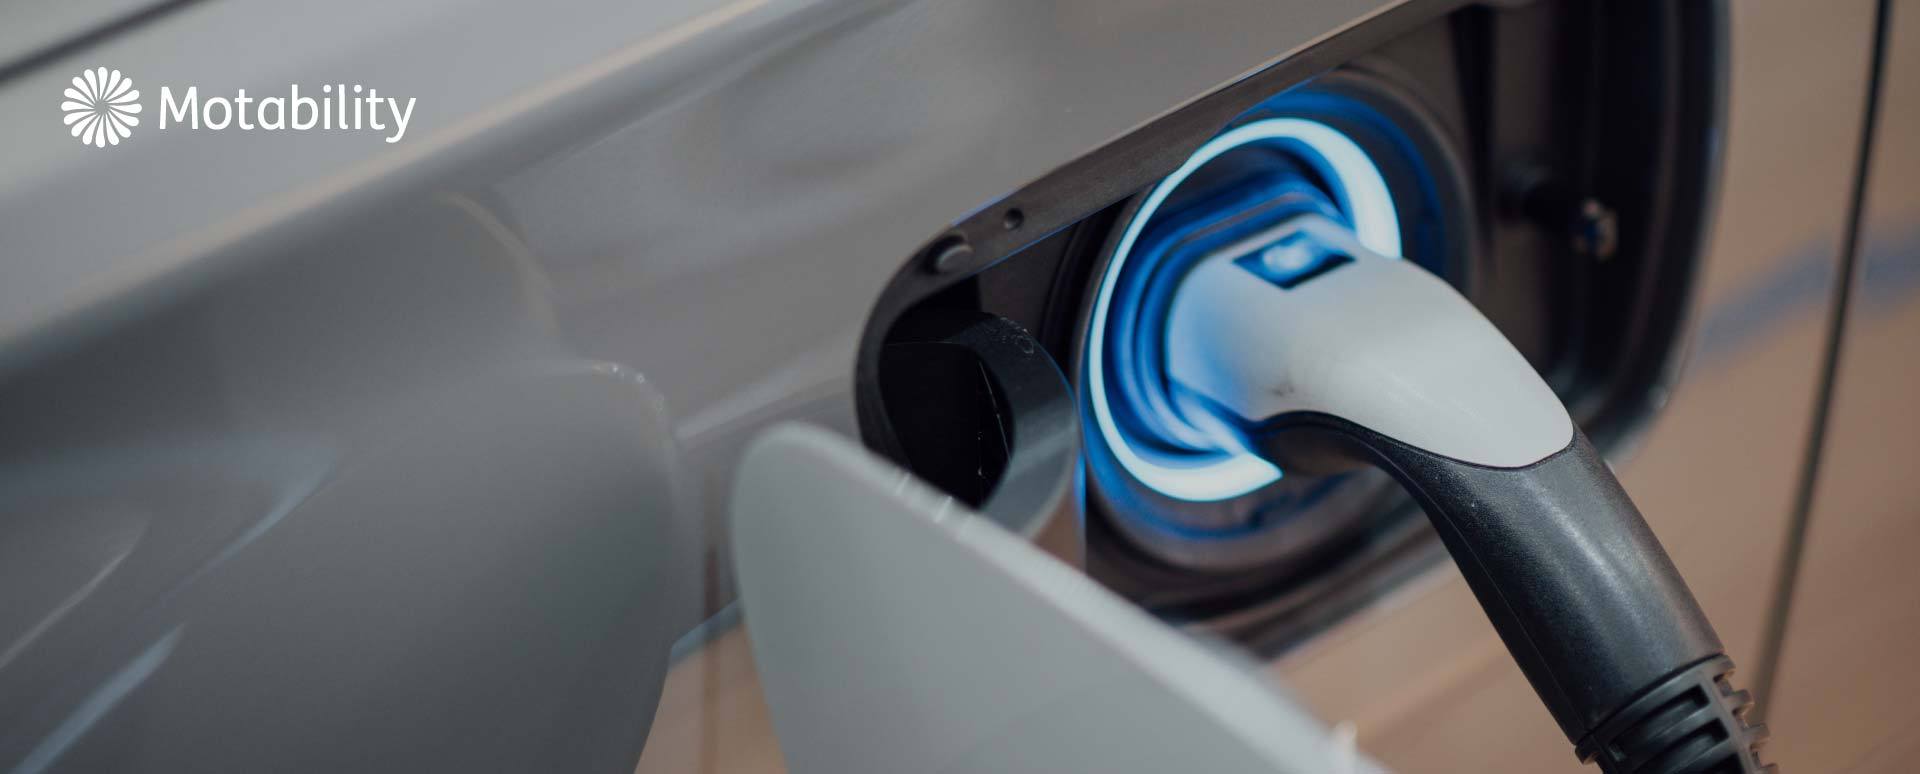 Motability Electric Vehicle Charge Point